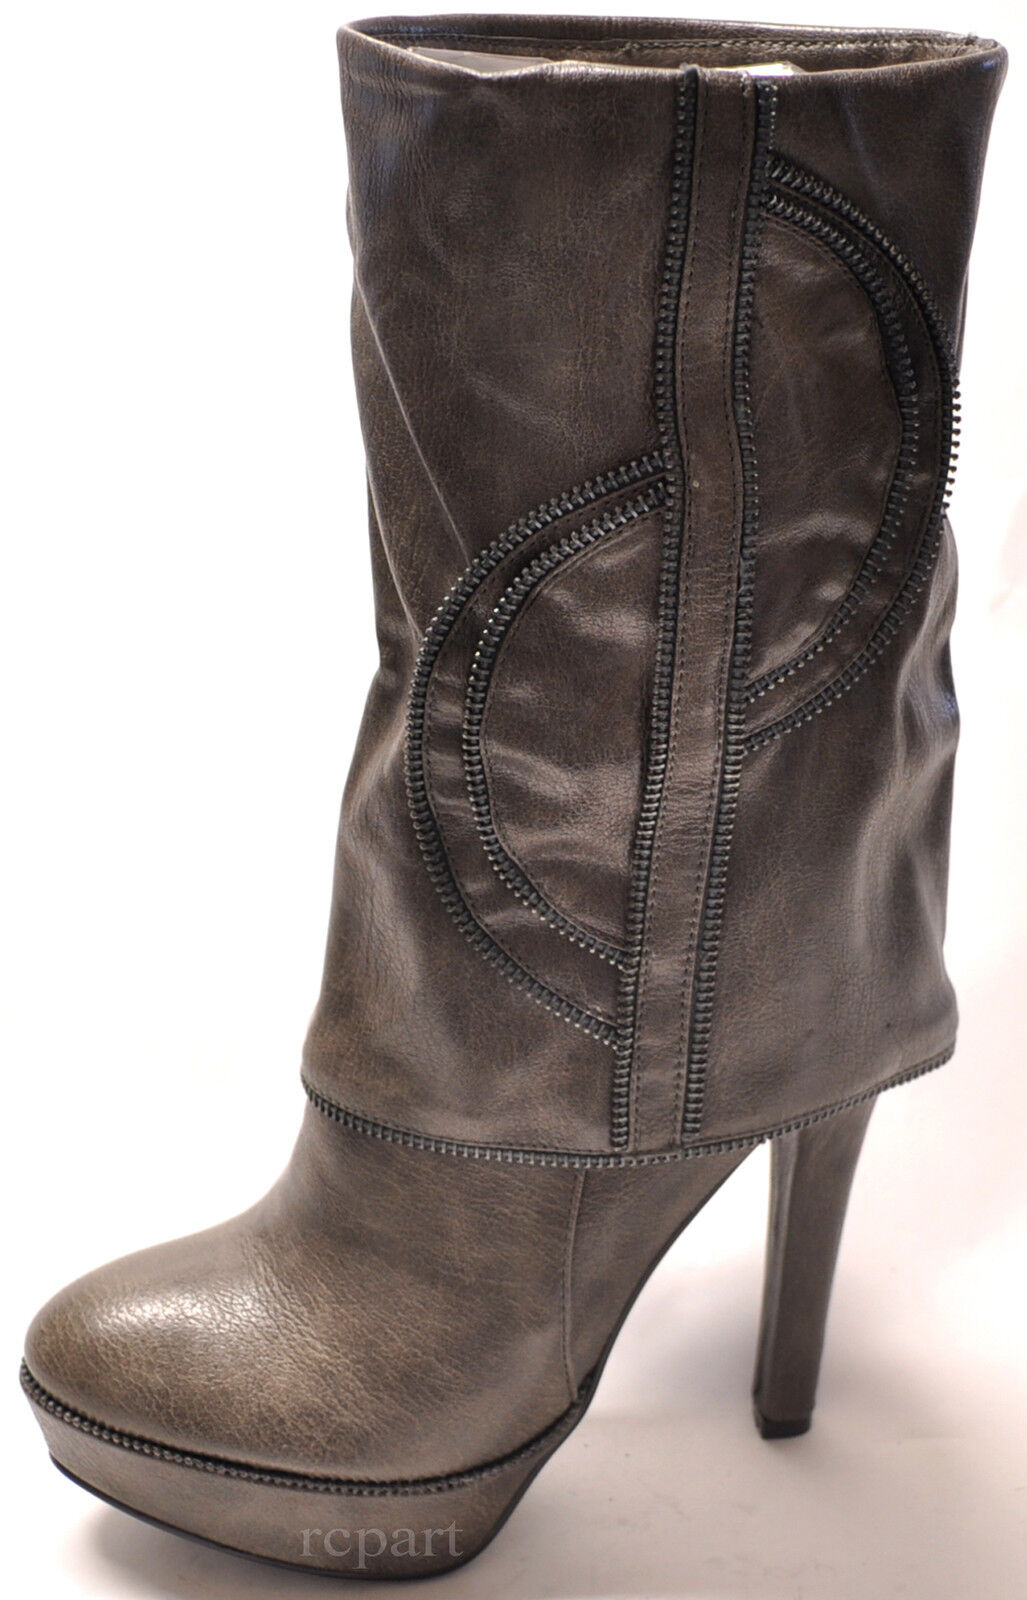 NEU Damens's schuhe fashion mid calf high heel boots side zipper gray